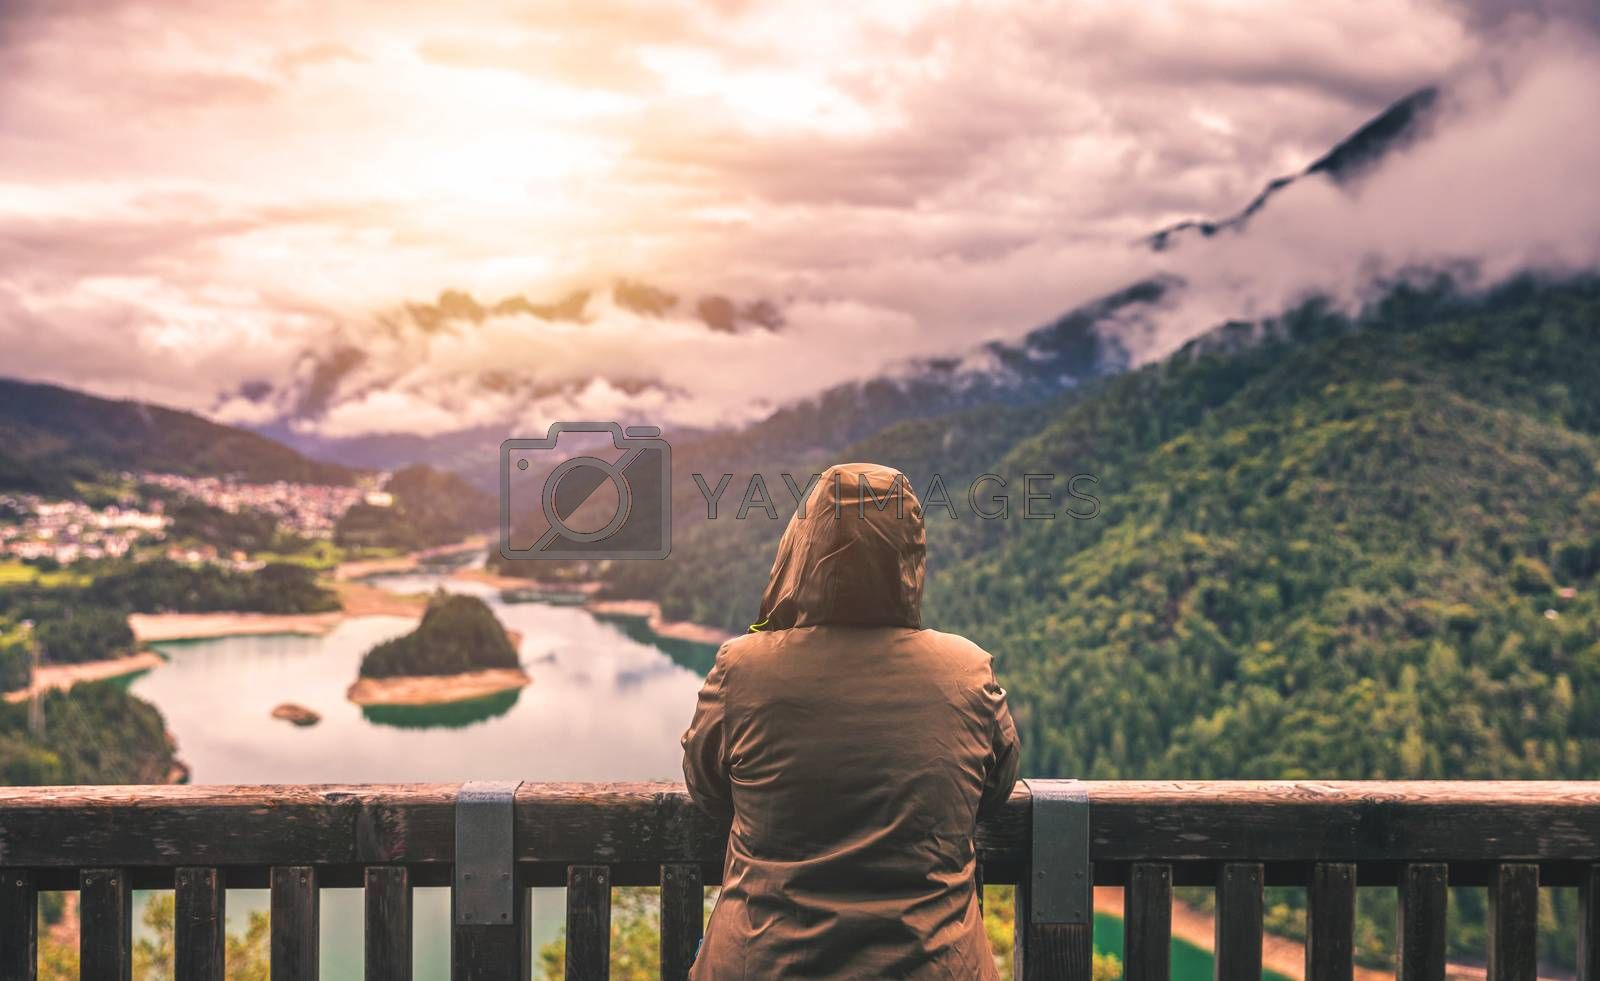 Traveler relaxing meditation with serene view mountains and lake landscape. Travel Lifestyle hiking concept summer vacations outdoor.